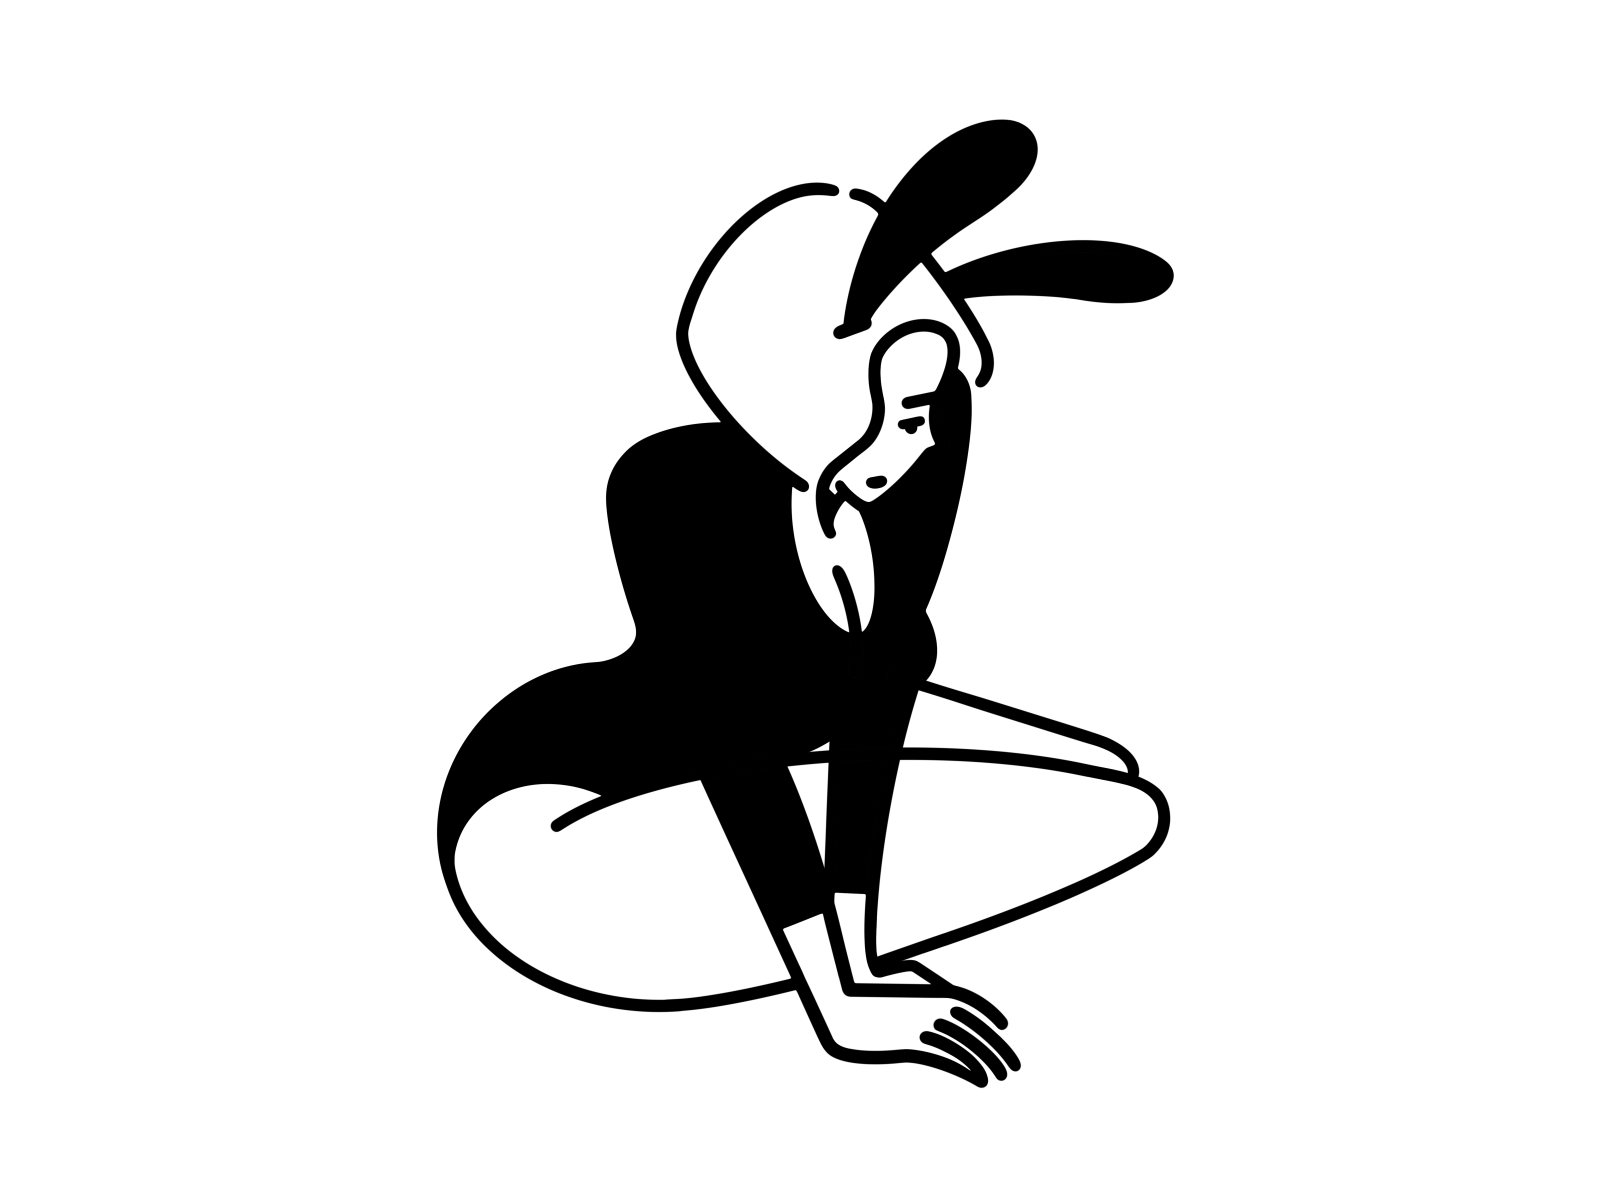 playgirl by tatooine girl on Dribbble.